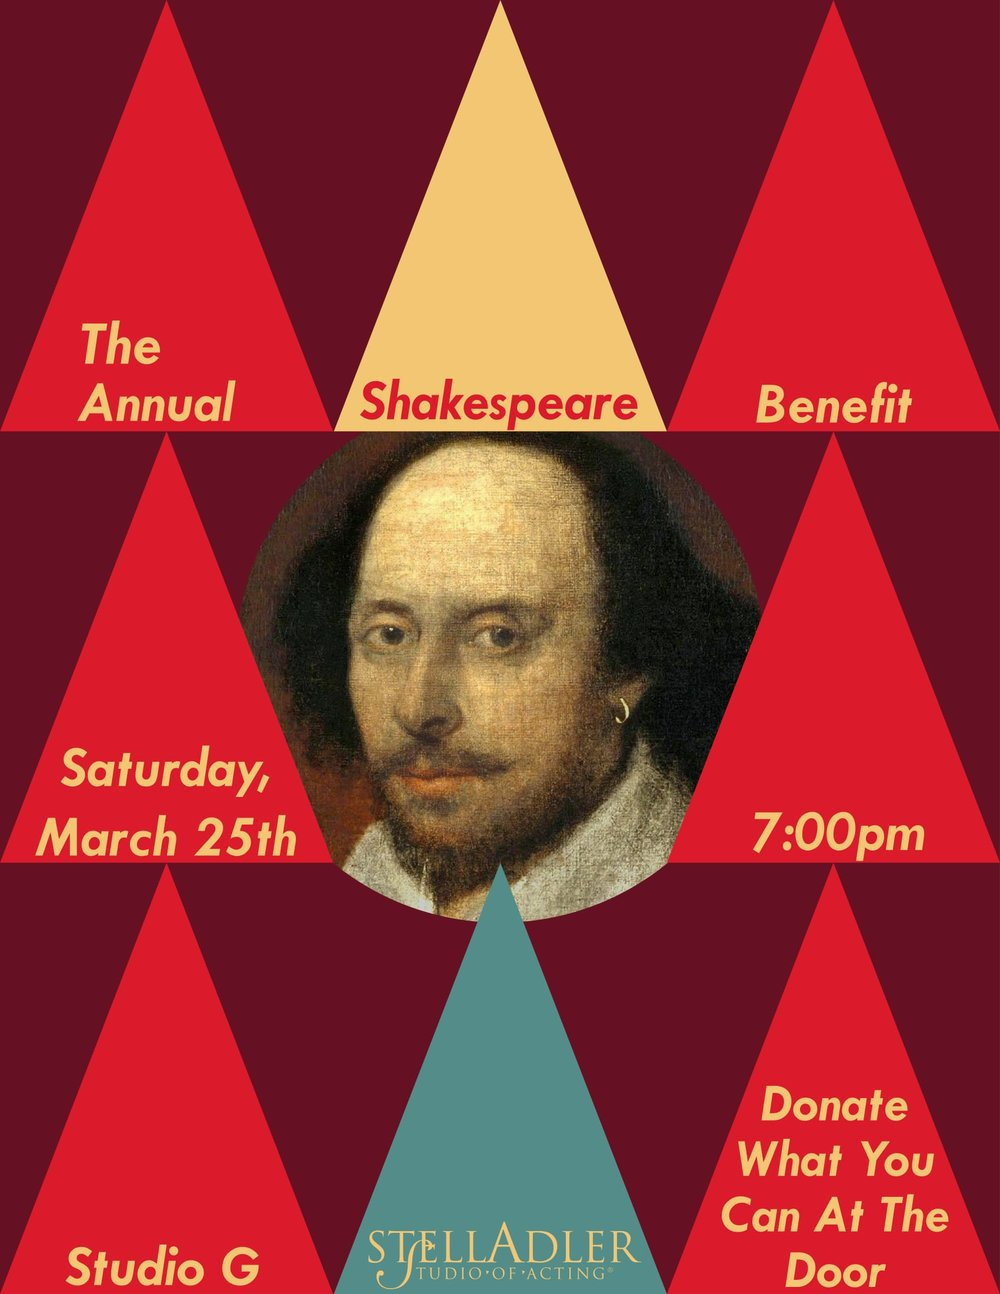 shakespeare benefit poster-1.jpg